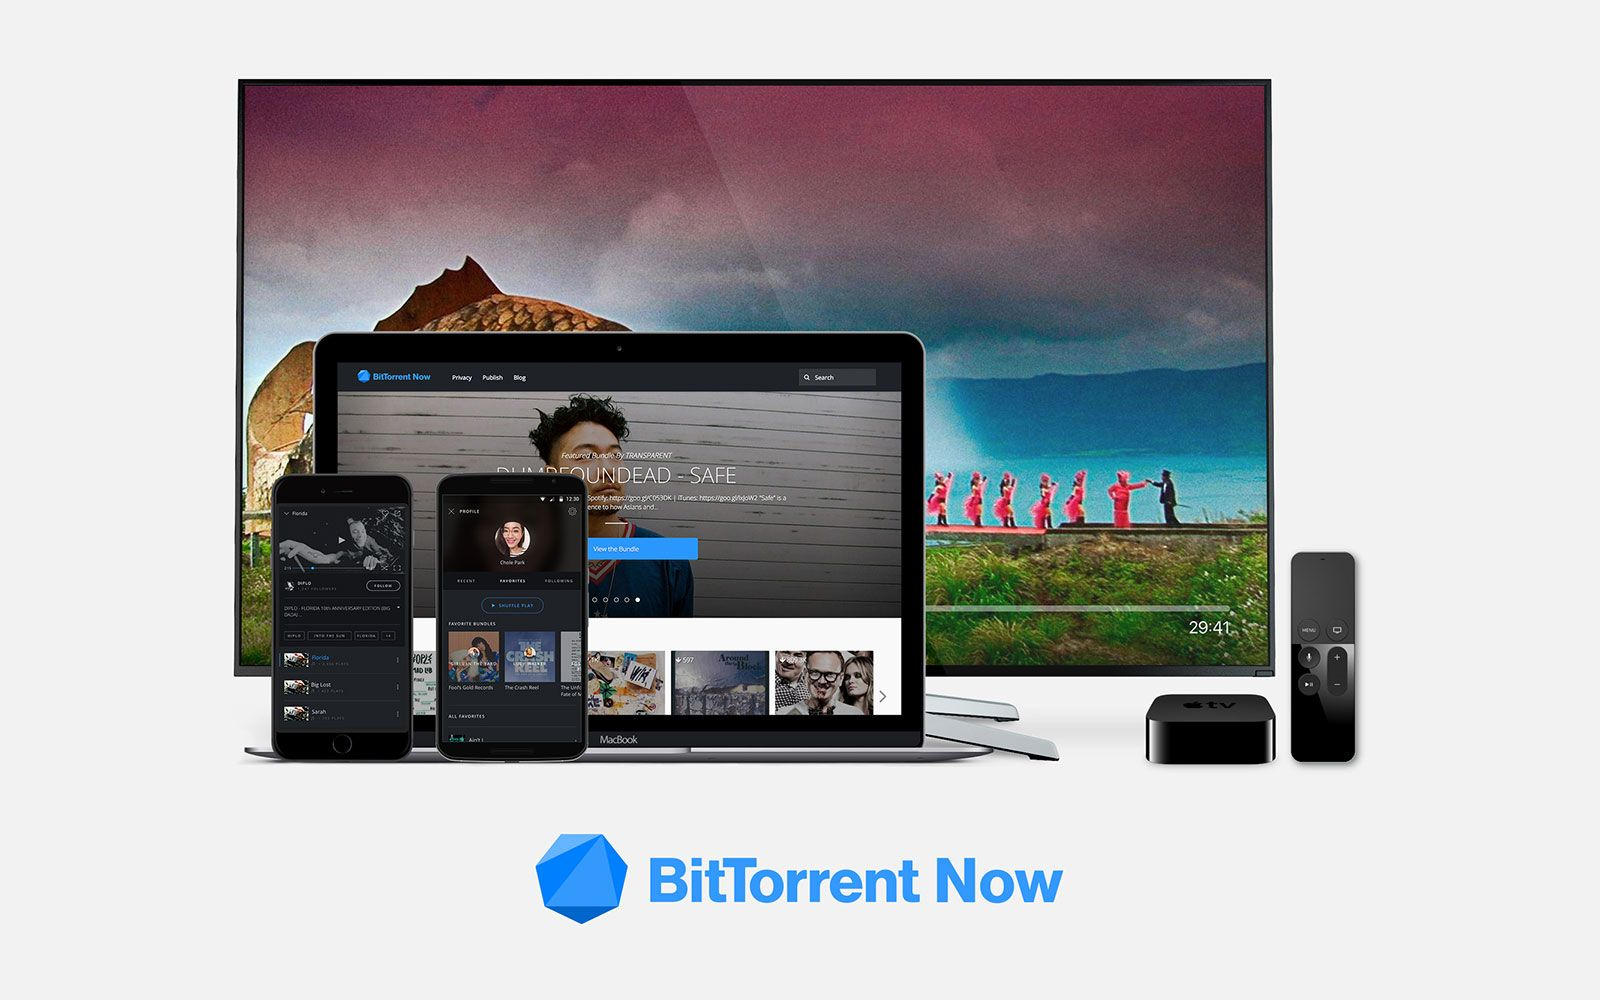 BitTorrent Now is an open, adsupported music and video